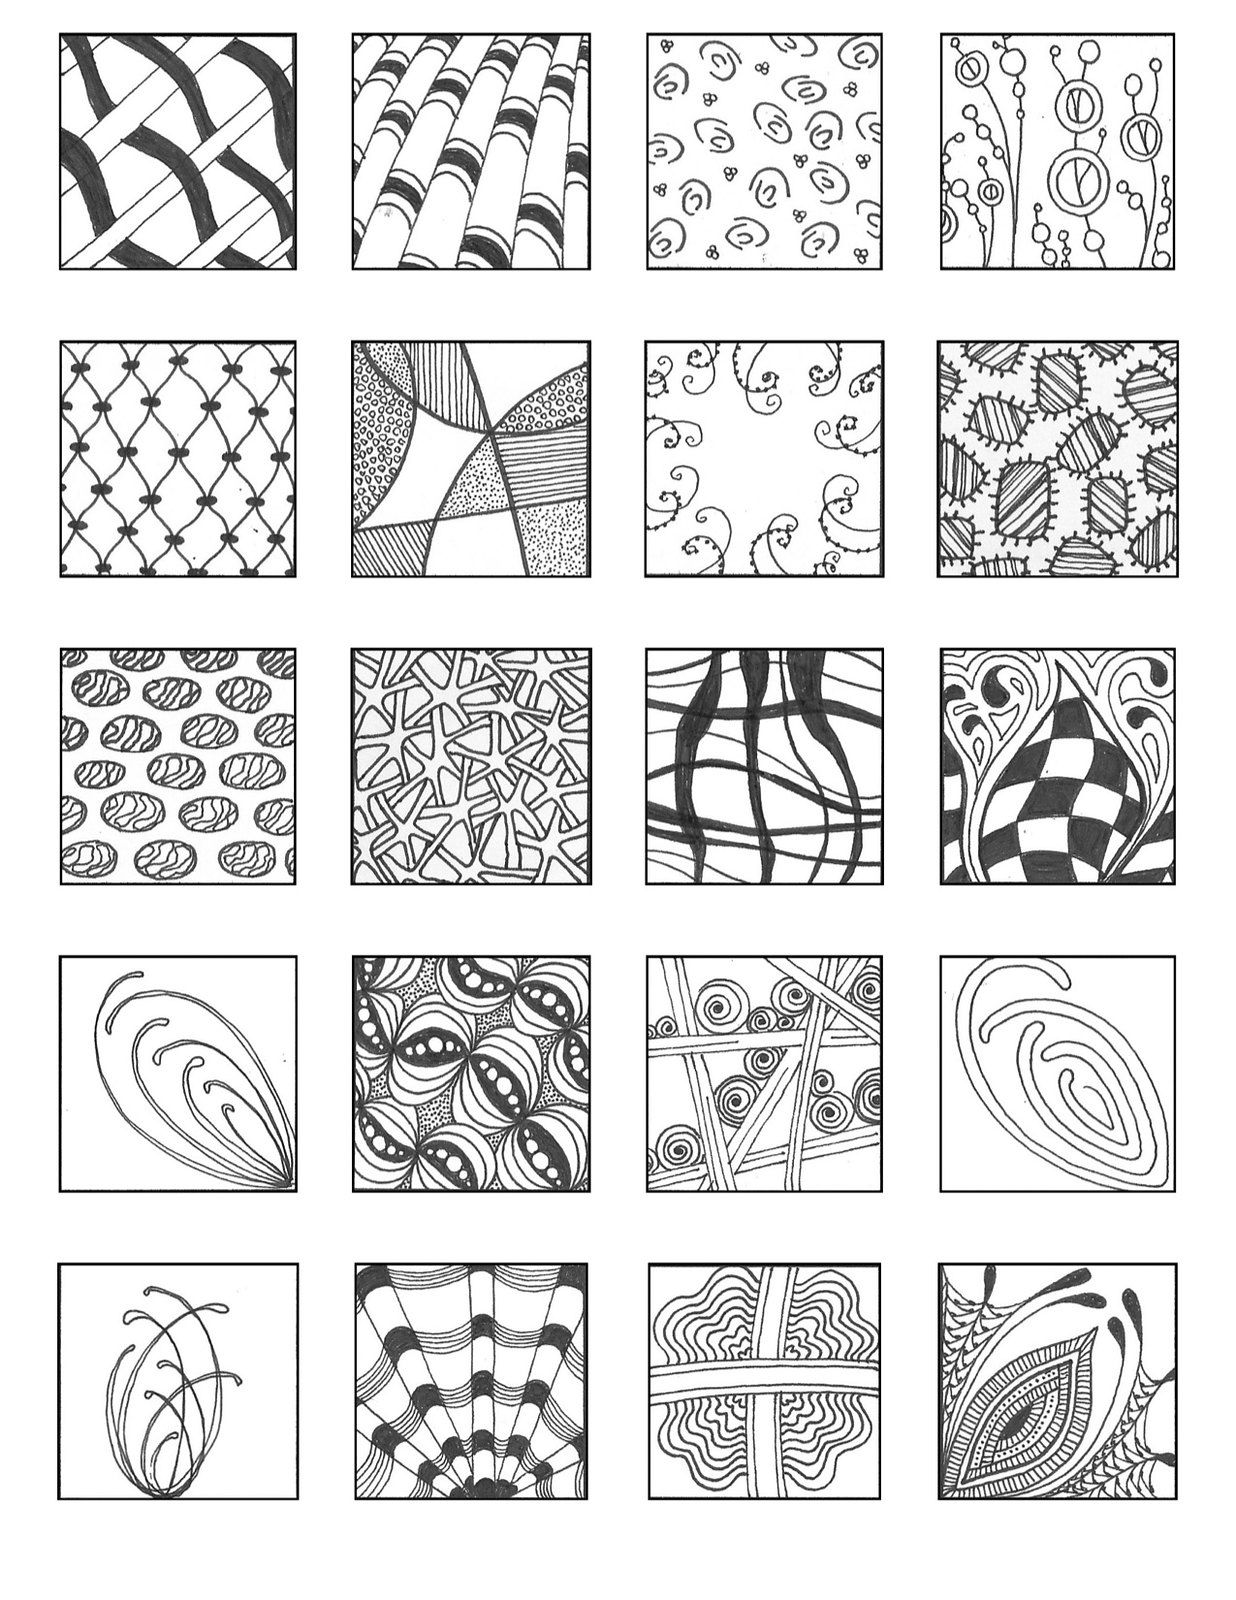 Noncat10 In 2020 Zentangle Patterns Tangle Patterns Doodle